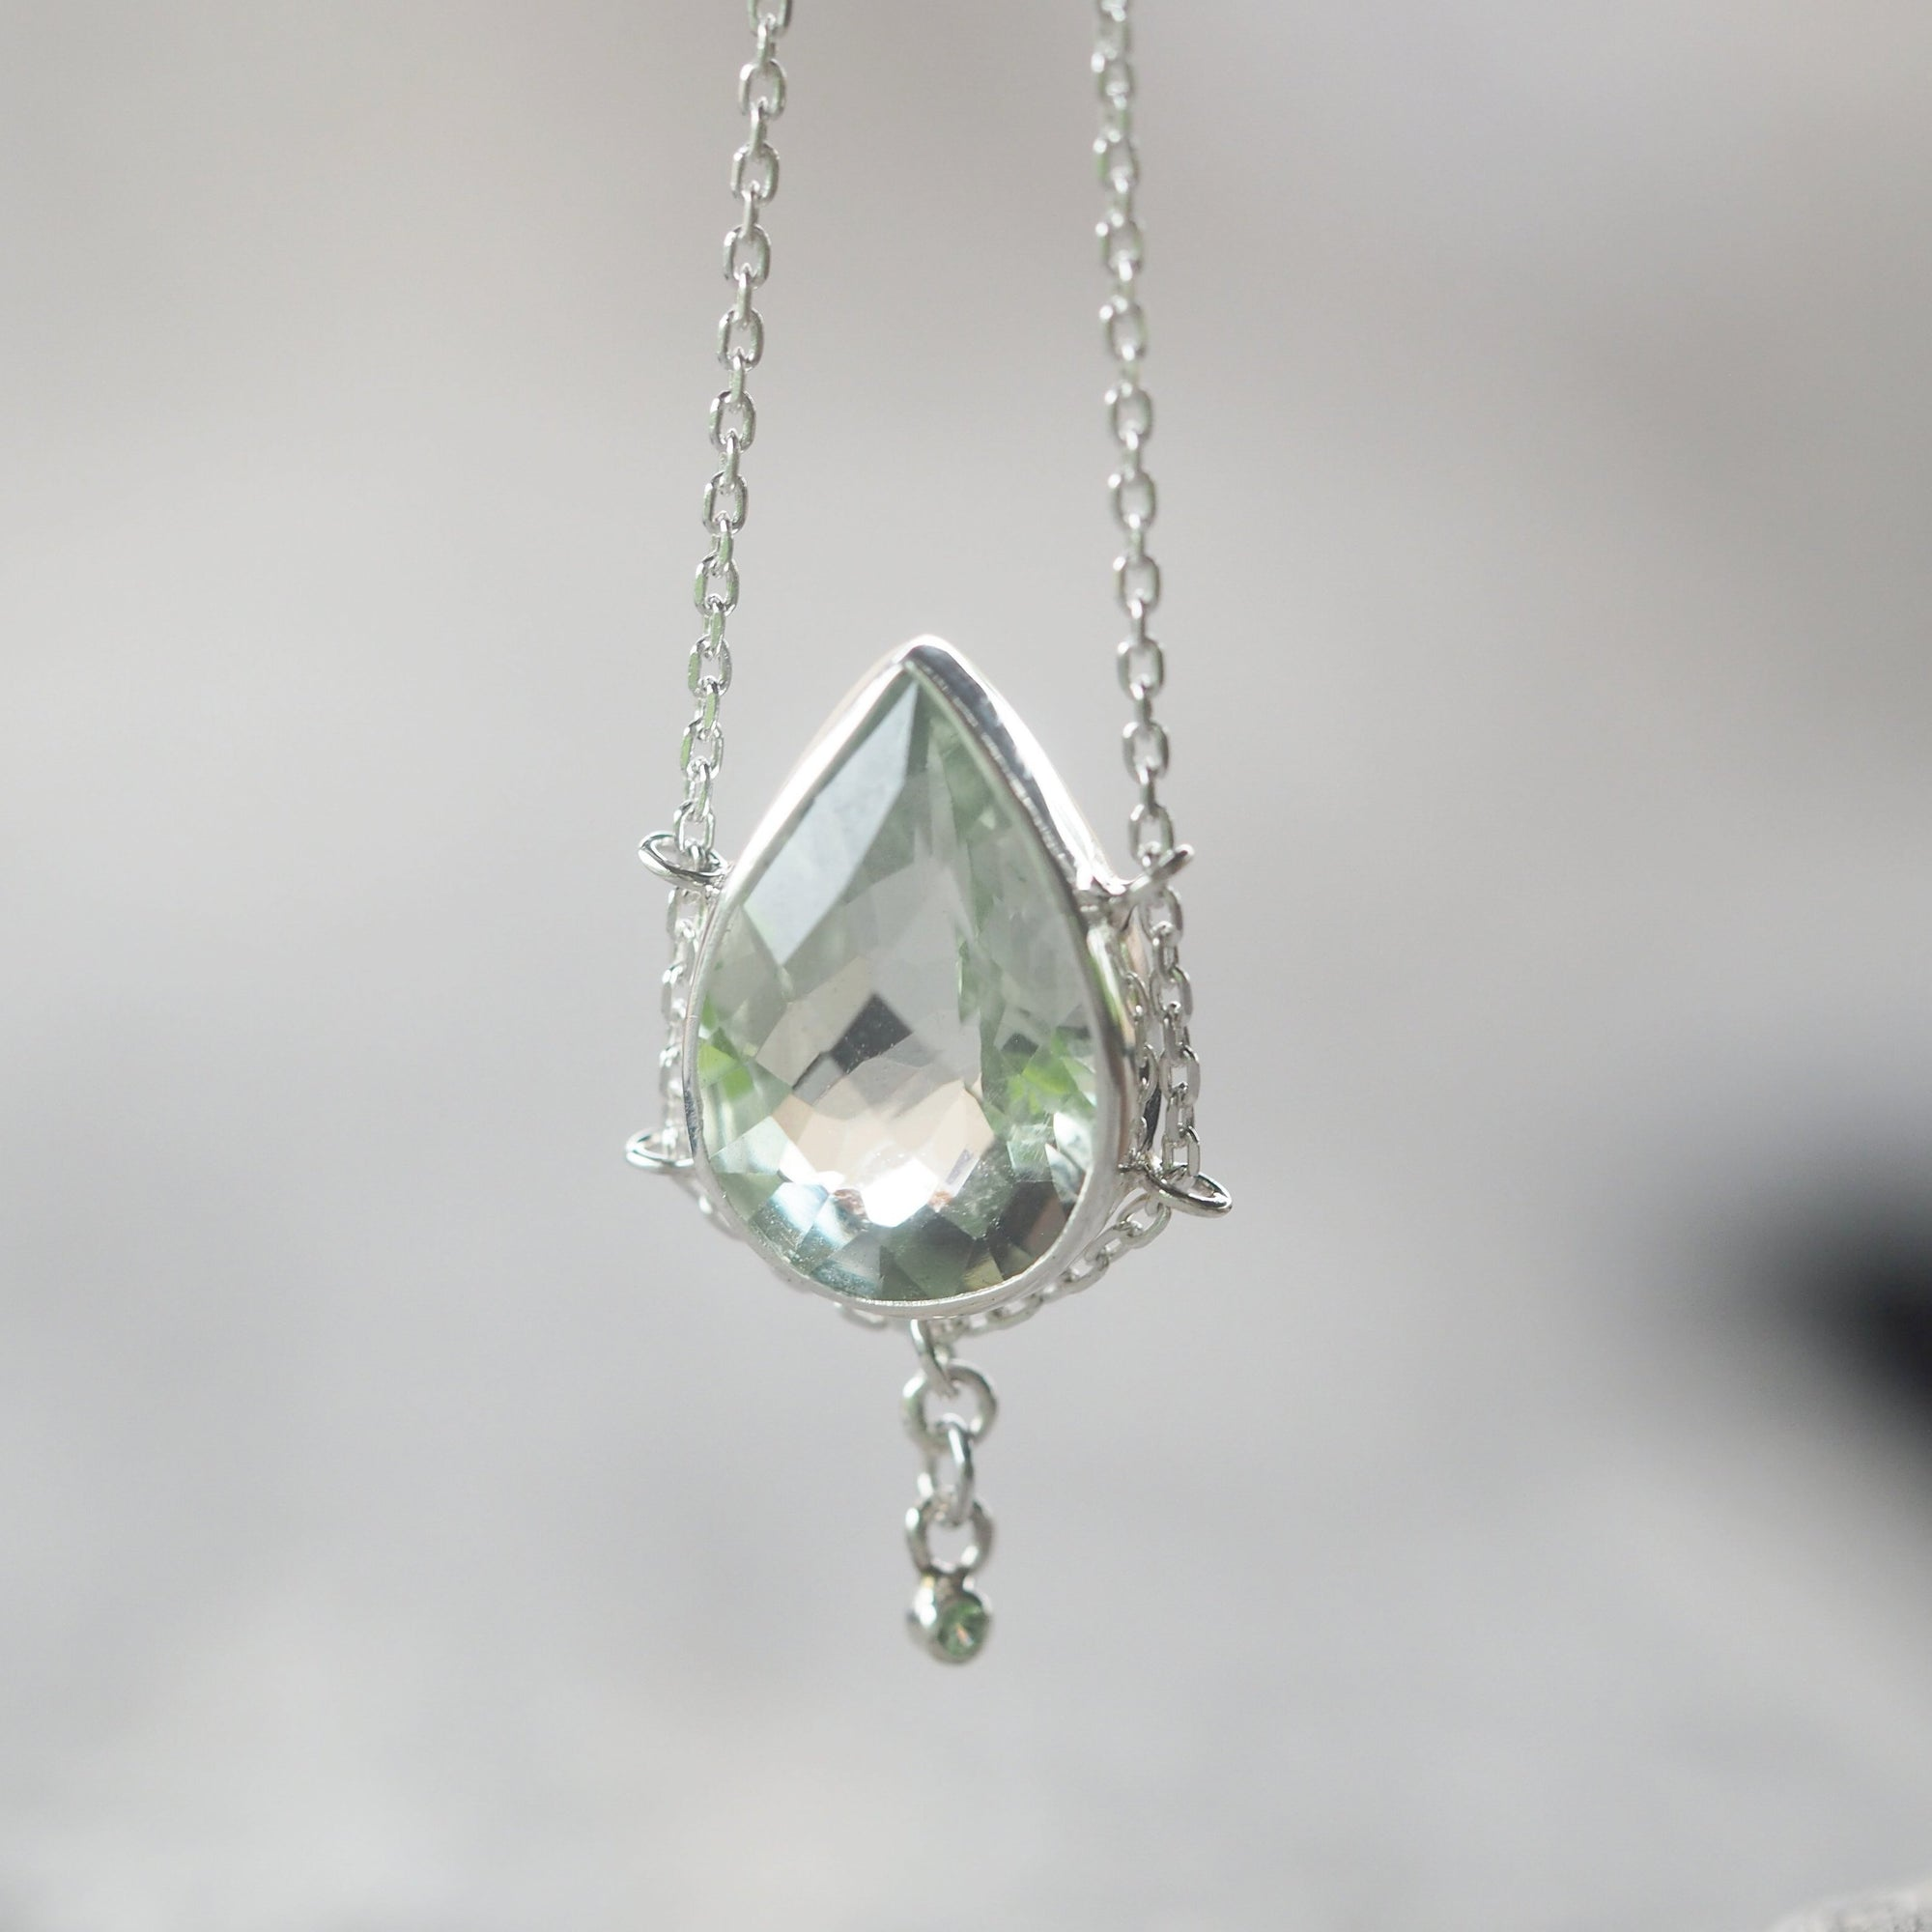 Green Amethyst and Tsavorite Garnet Necklace - Gardens of the Sun Jewelry